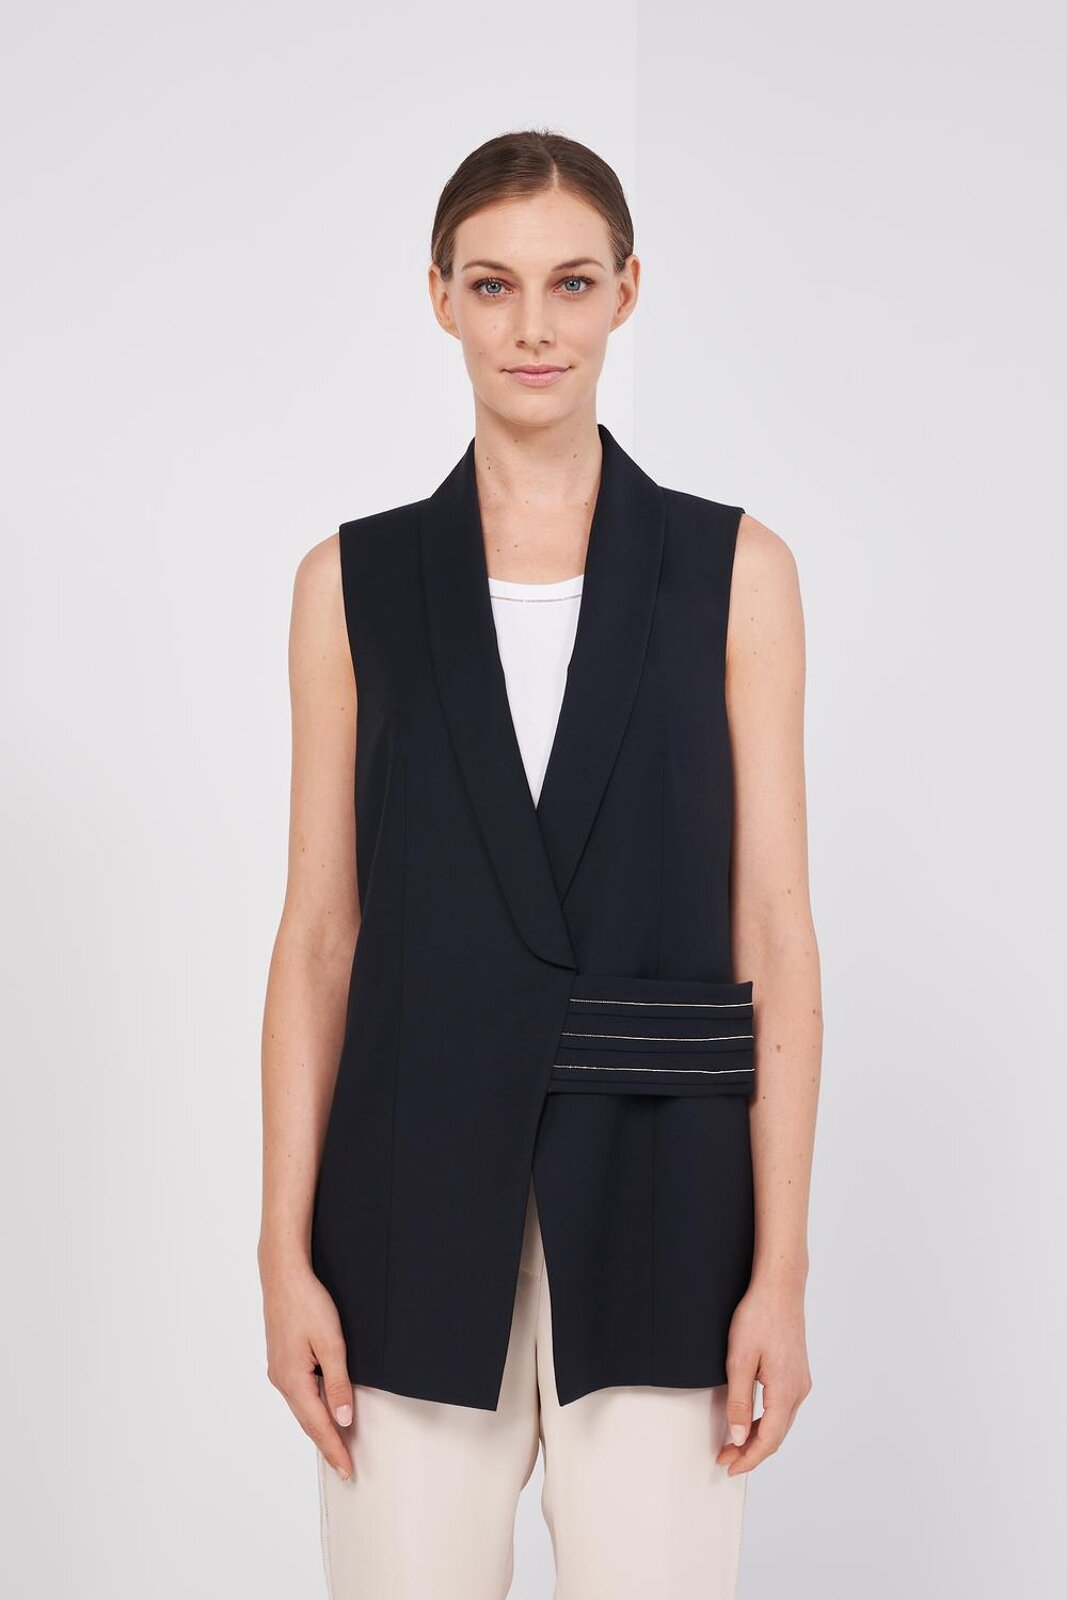 Sleeveless Vest In Light And Fresh Wool. Front Closure With Crossed Band With Metallic Details And Hidden Buttons. Oversize fit. - Peserico